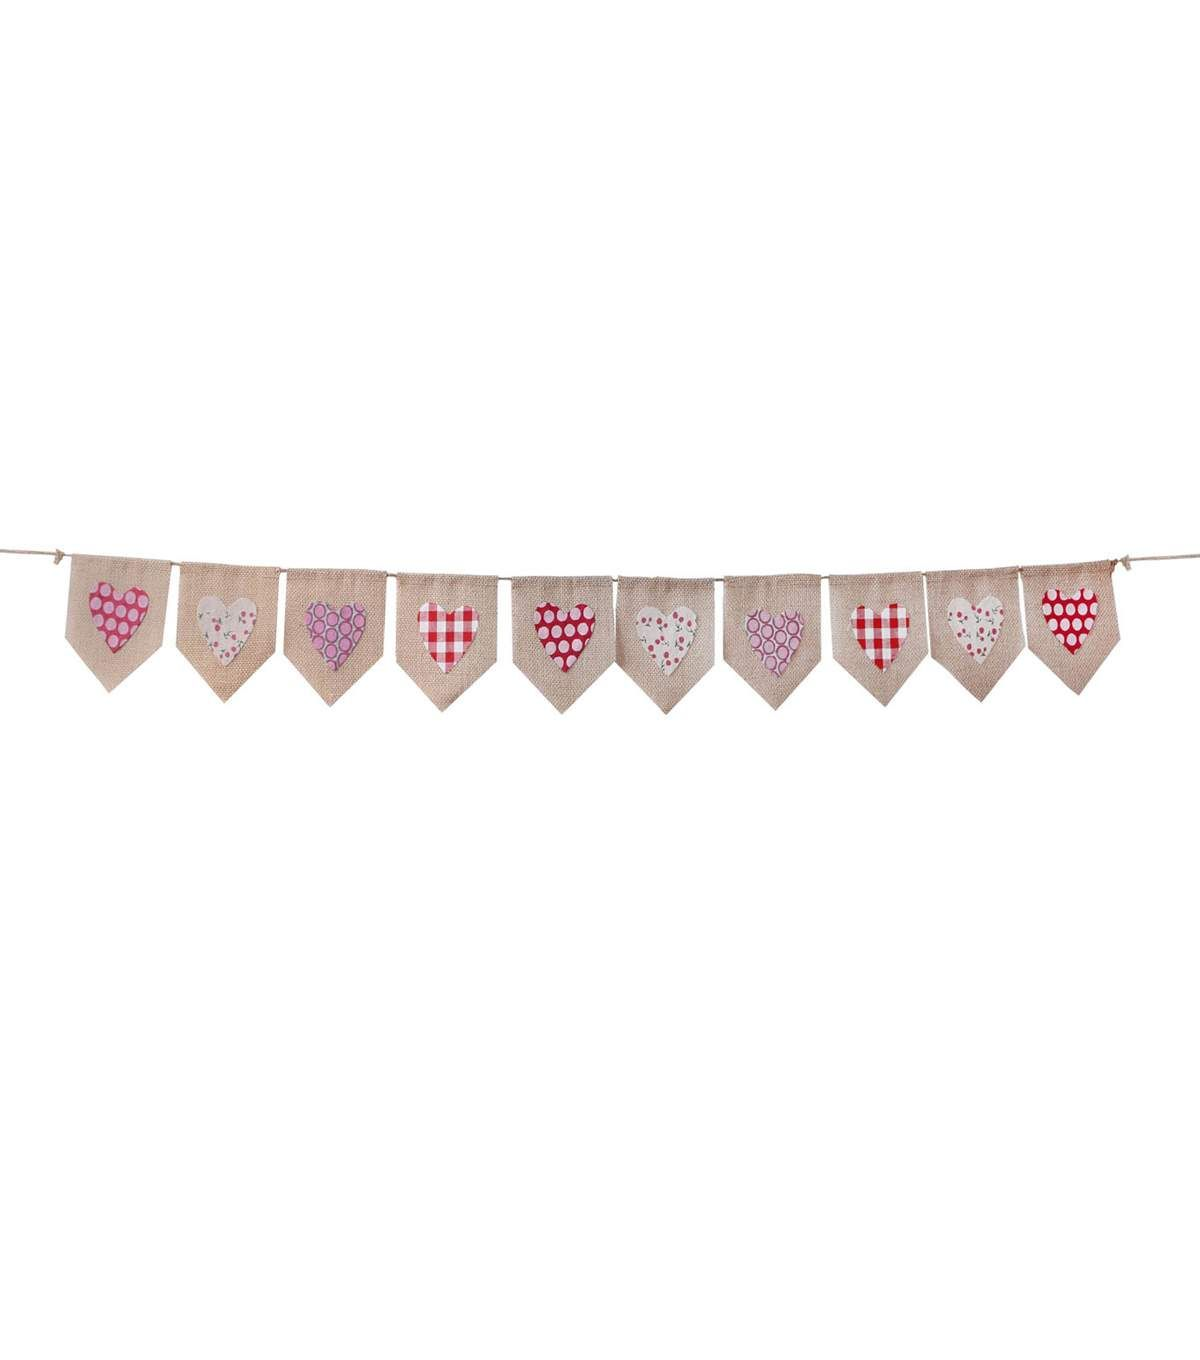 Decorate your home or party space with the Valentines Day Burlap Banner-Printed Hearts. This fun Valentine's Day banner features assorted hearts that makes it a lovely wall decor accent for the occasi